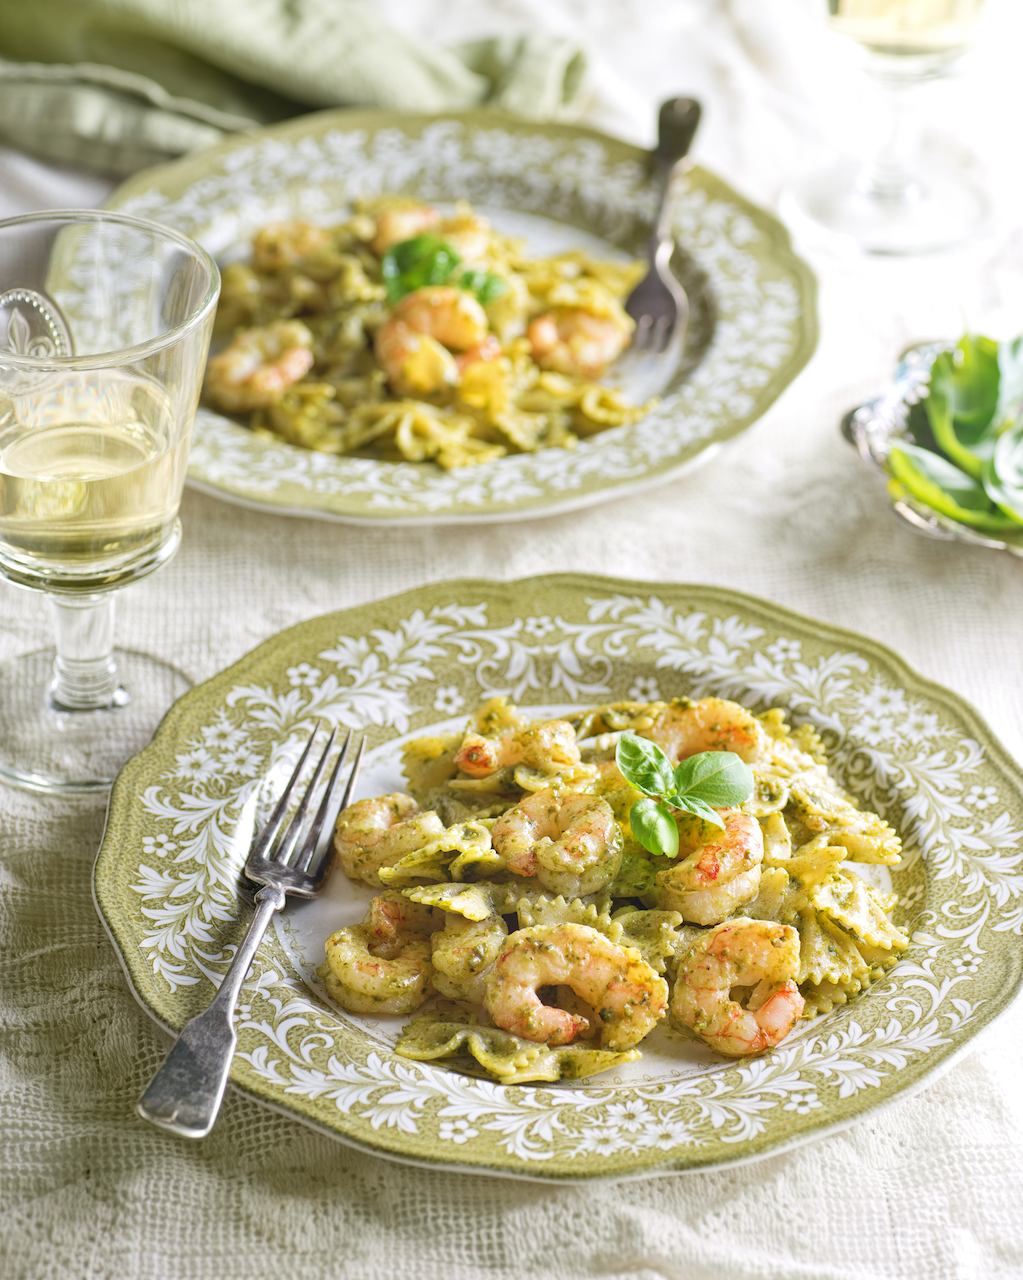 Shrimp pasta with pesto and parmesan cheese. An easy and delicious dinner or lunch.